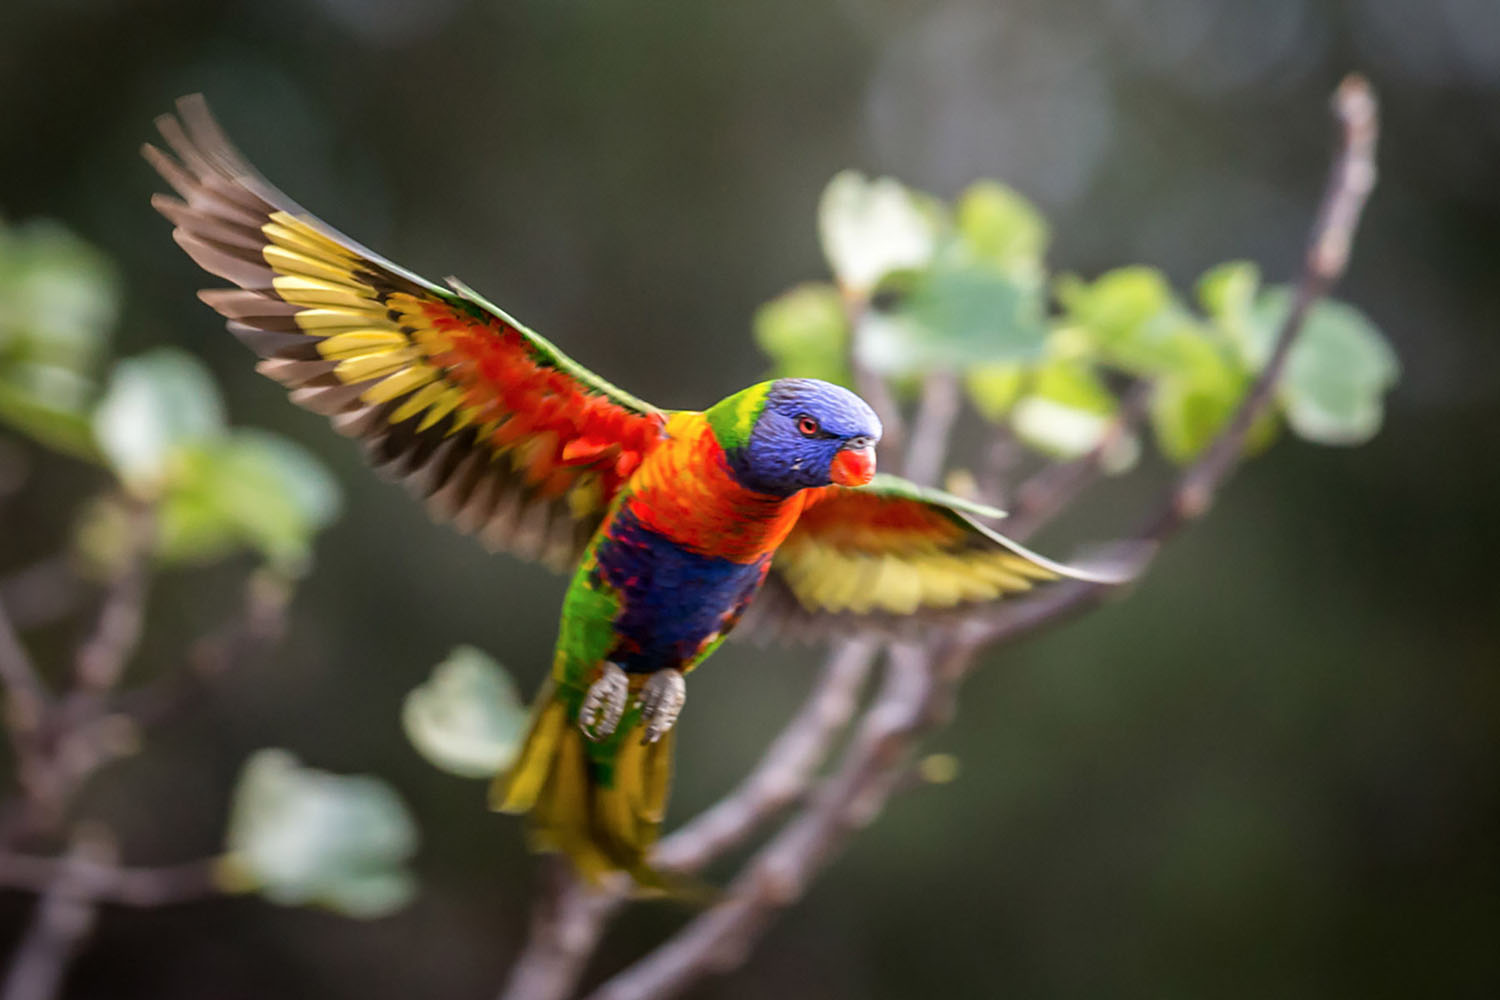 Colourful Rainbow Lorikeet comes in for landing with wings spread wide